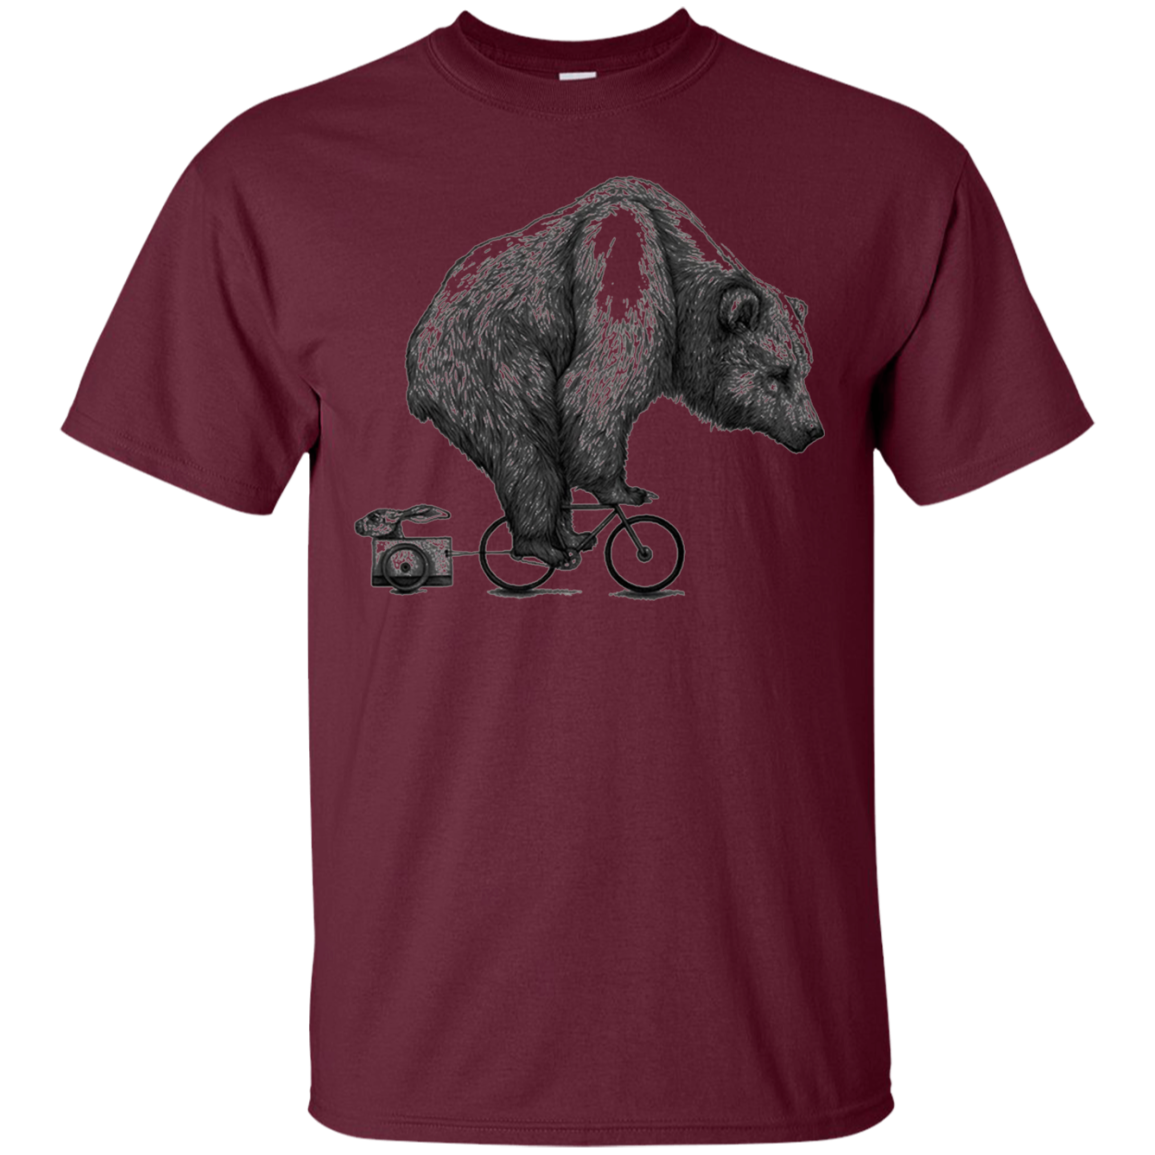 Bear on a Bike T Shirt bears Lover t shirt gift